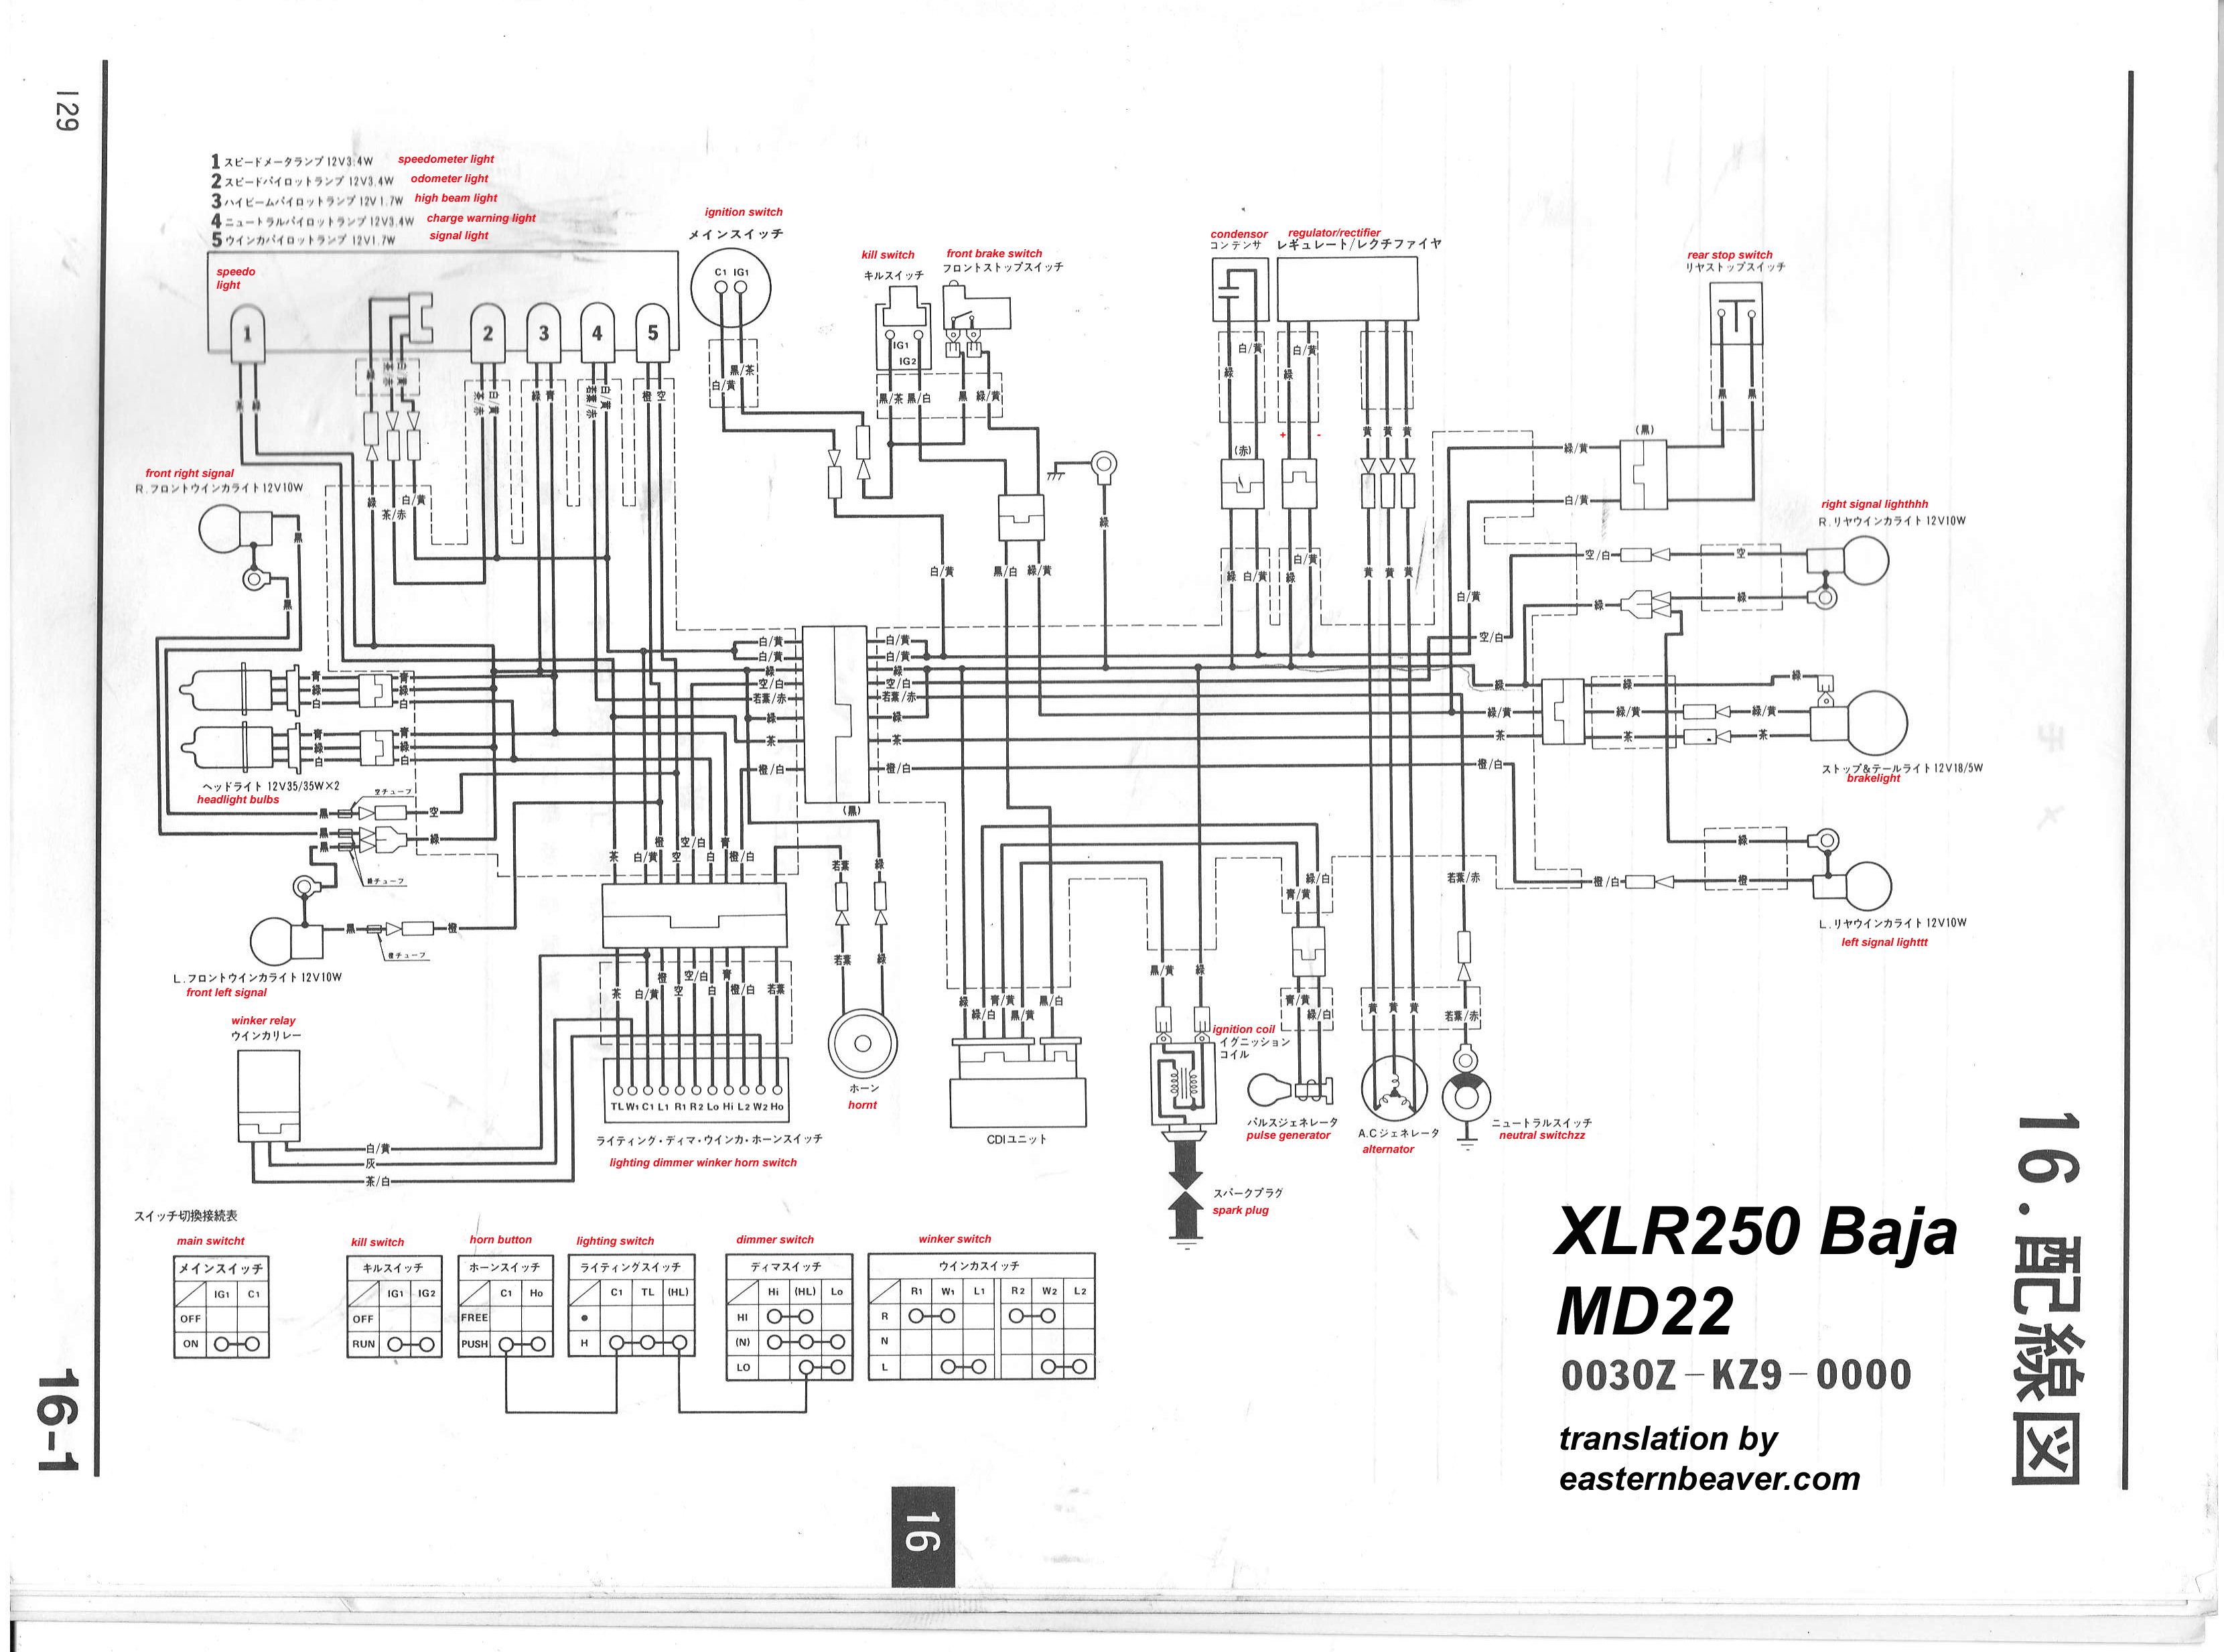 XLR250_Baja Wiring Diagram MD22 xlr jack wiring diagram the wiring diagram readingrat net baja designs xr650r wiring diagram at nearapp.co